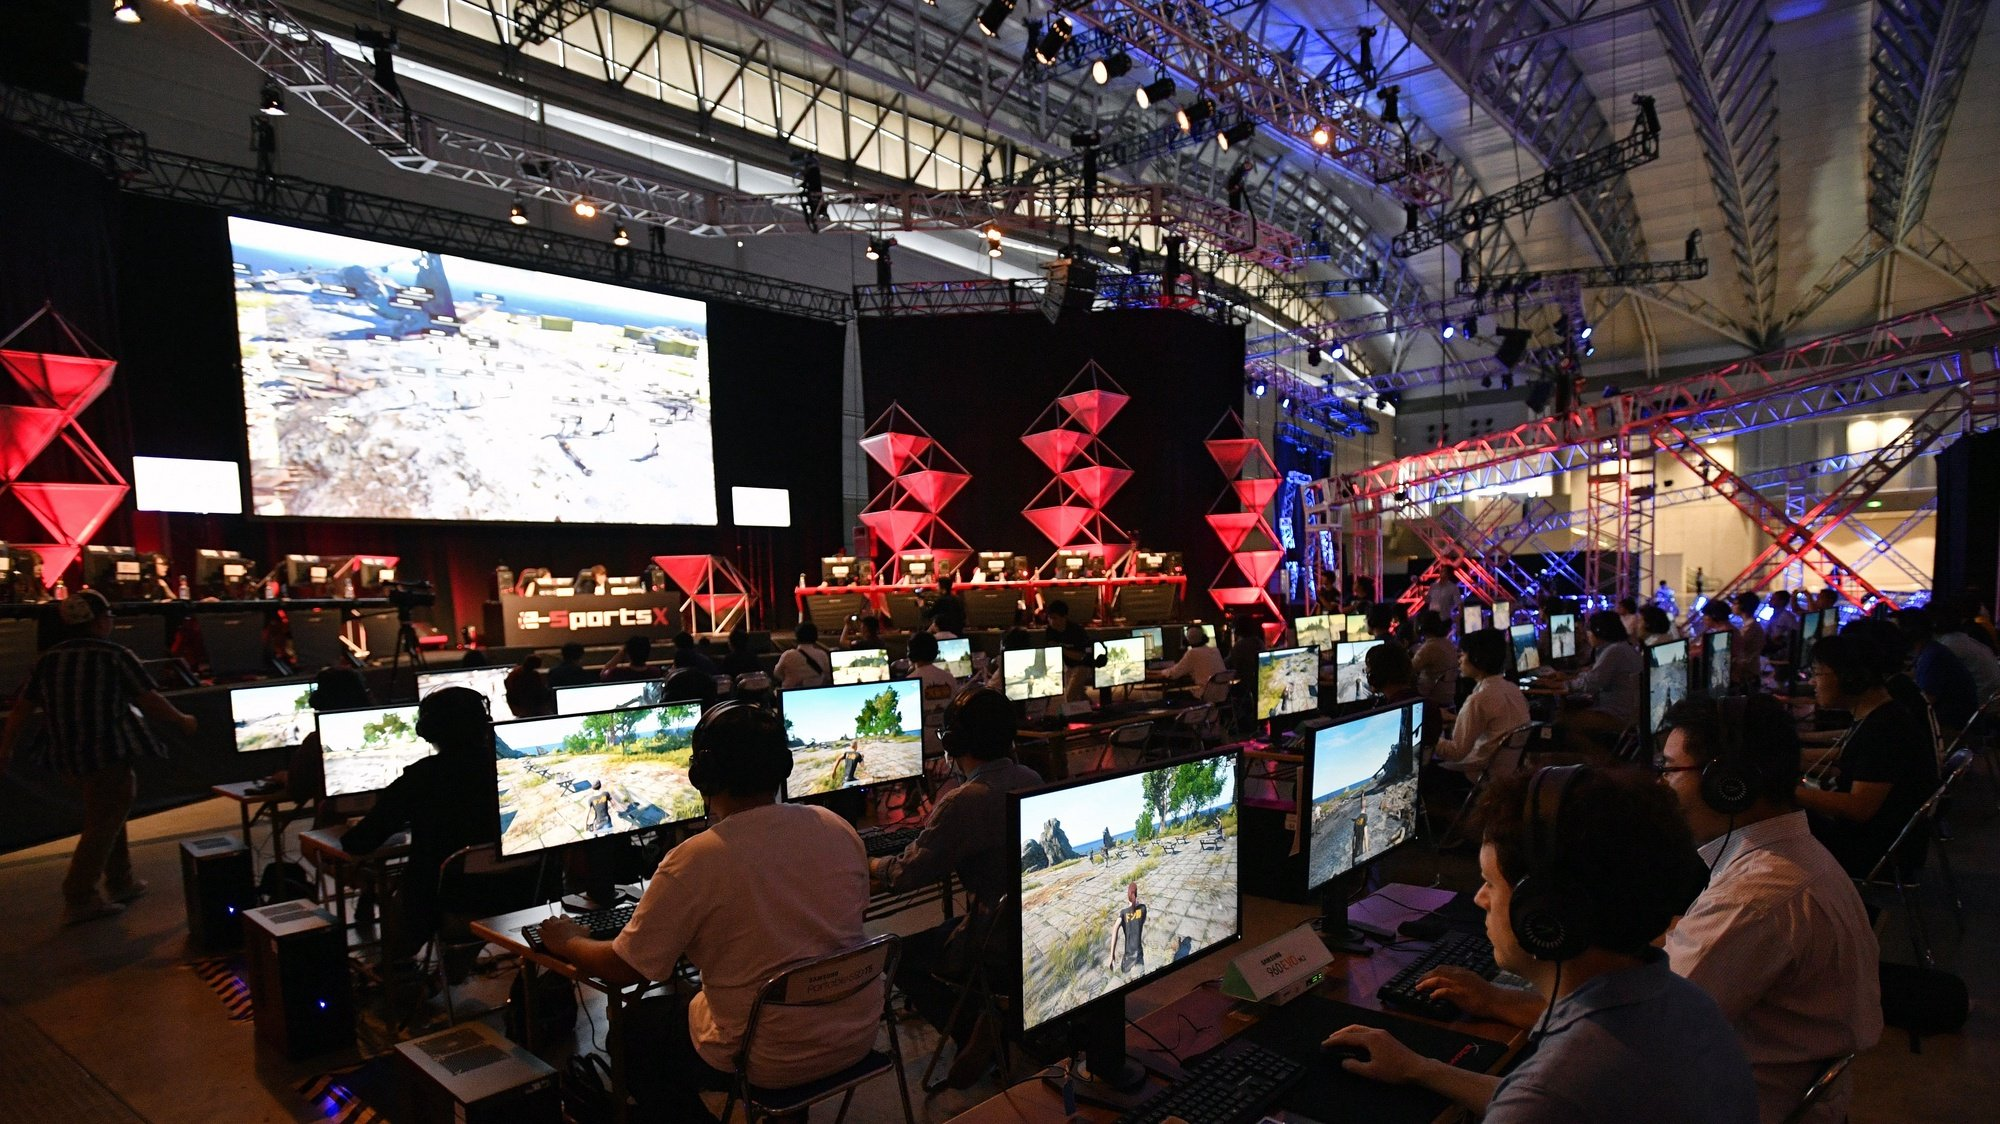 epa06217119 Visitors play at an eSports competition during the Tokyo Game Show 2017 at Makuhari Messe in Chiba, east of Tokyo, Japan, 21 September 2017. Asia's largest gaming event opened with 609 companies and organizations from 36 countries and regions exhibiting at the game show.  EPA/FRANCK ROBICHON